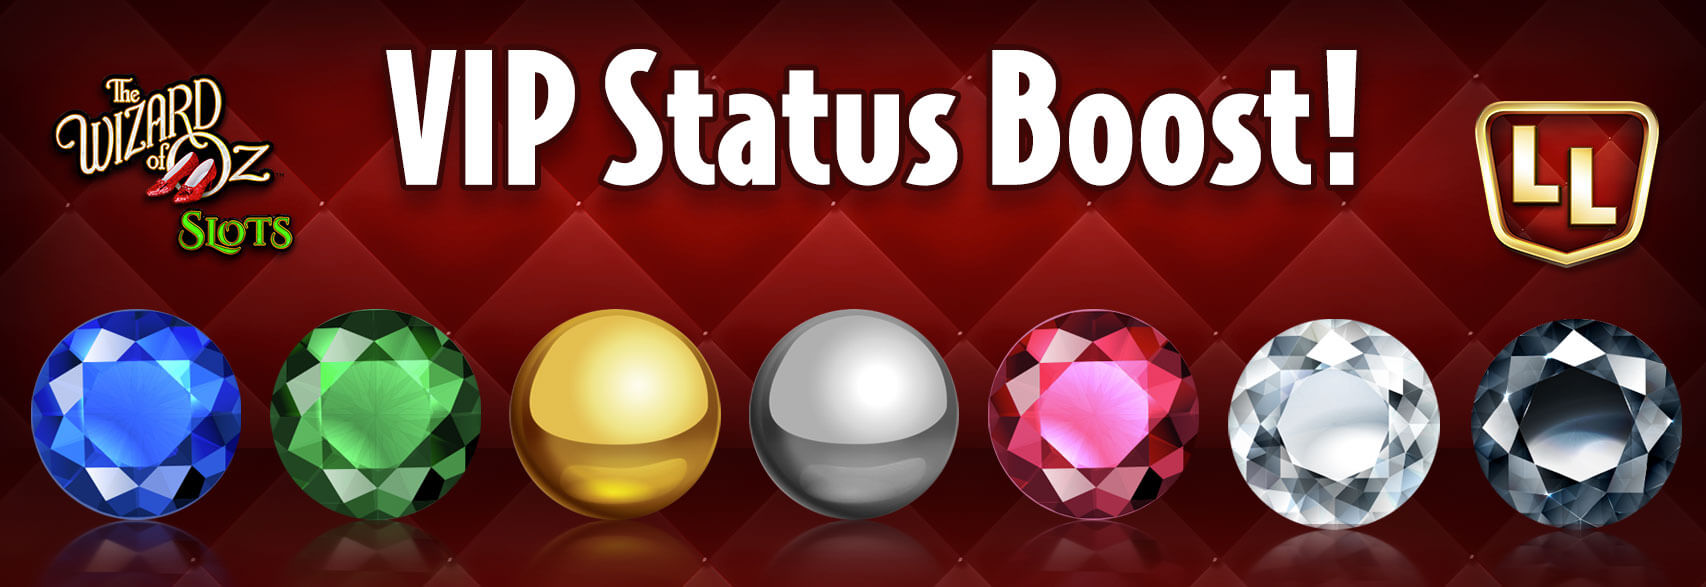 VIP Status Boost is ON! Play like a VIP today and enjoy bigger bonuses, and access to more VIP machines!